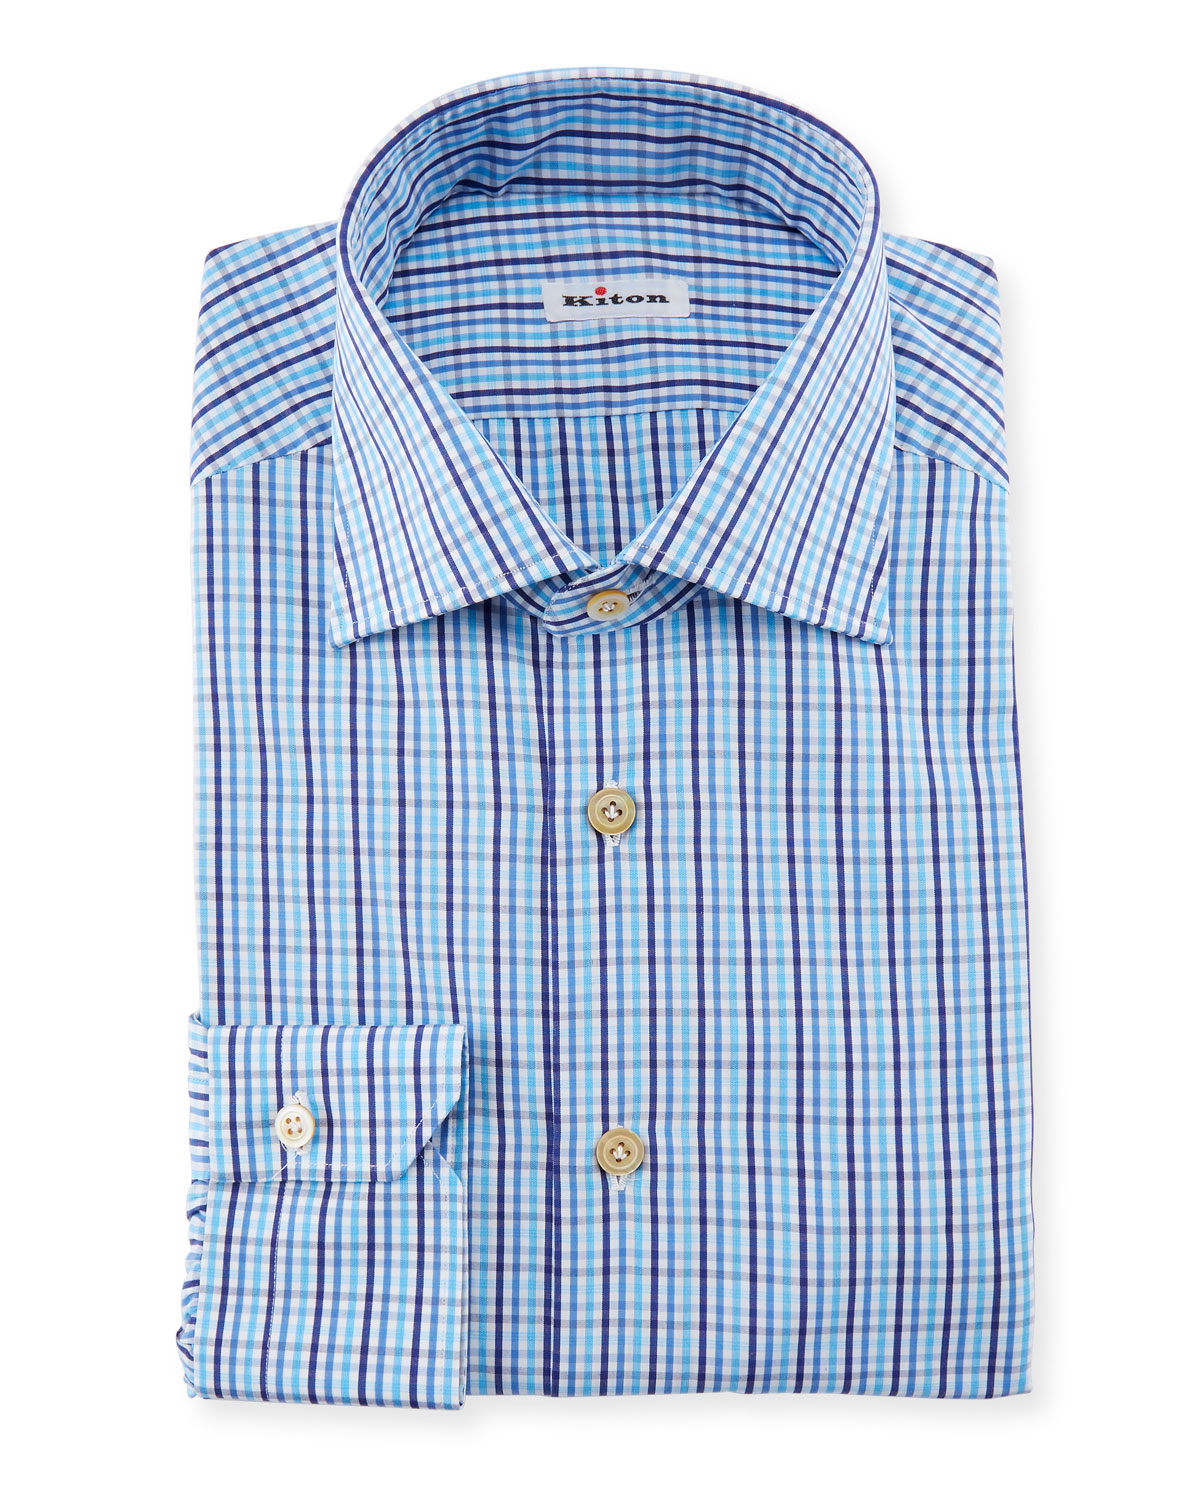 11f8b29c98 Kiton Multi-Check Dress Shirt